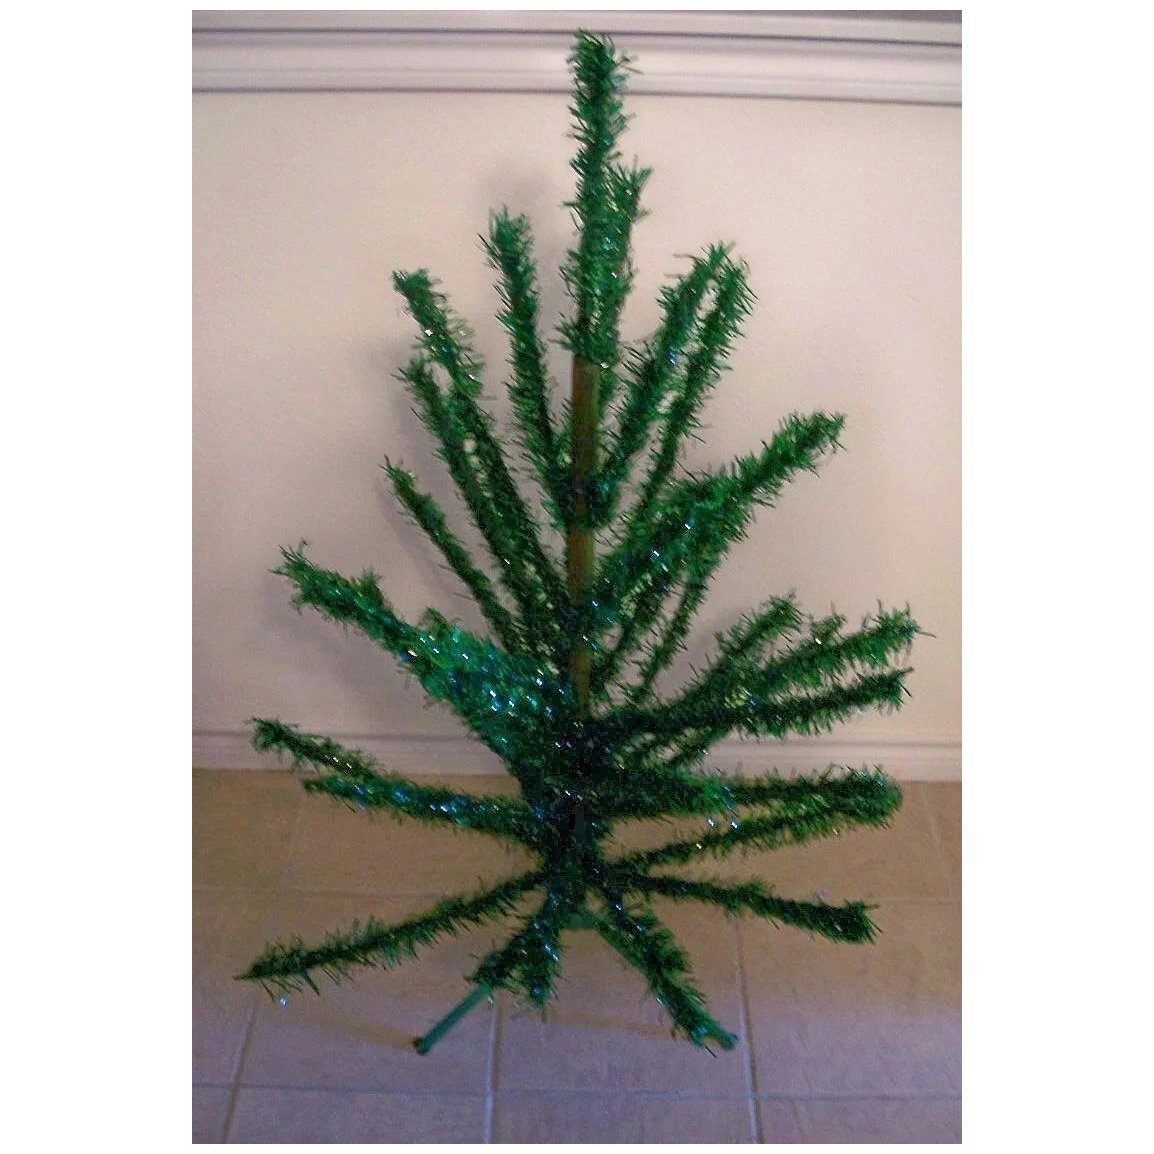 Tinsel Christmas Tree.Vintage Green Tinsel Christmas Tree